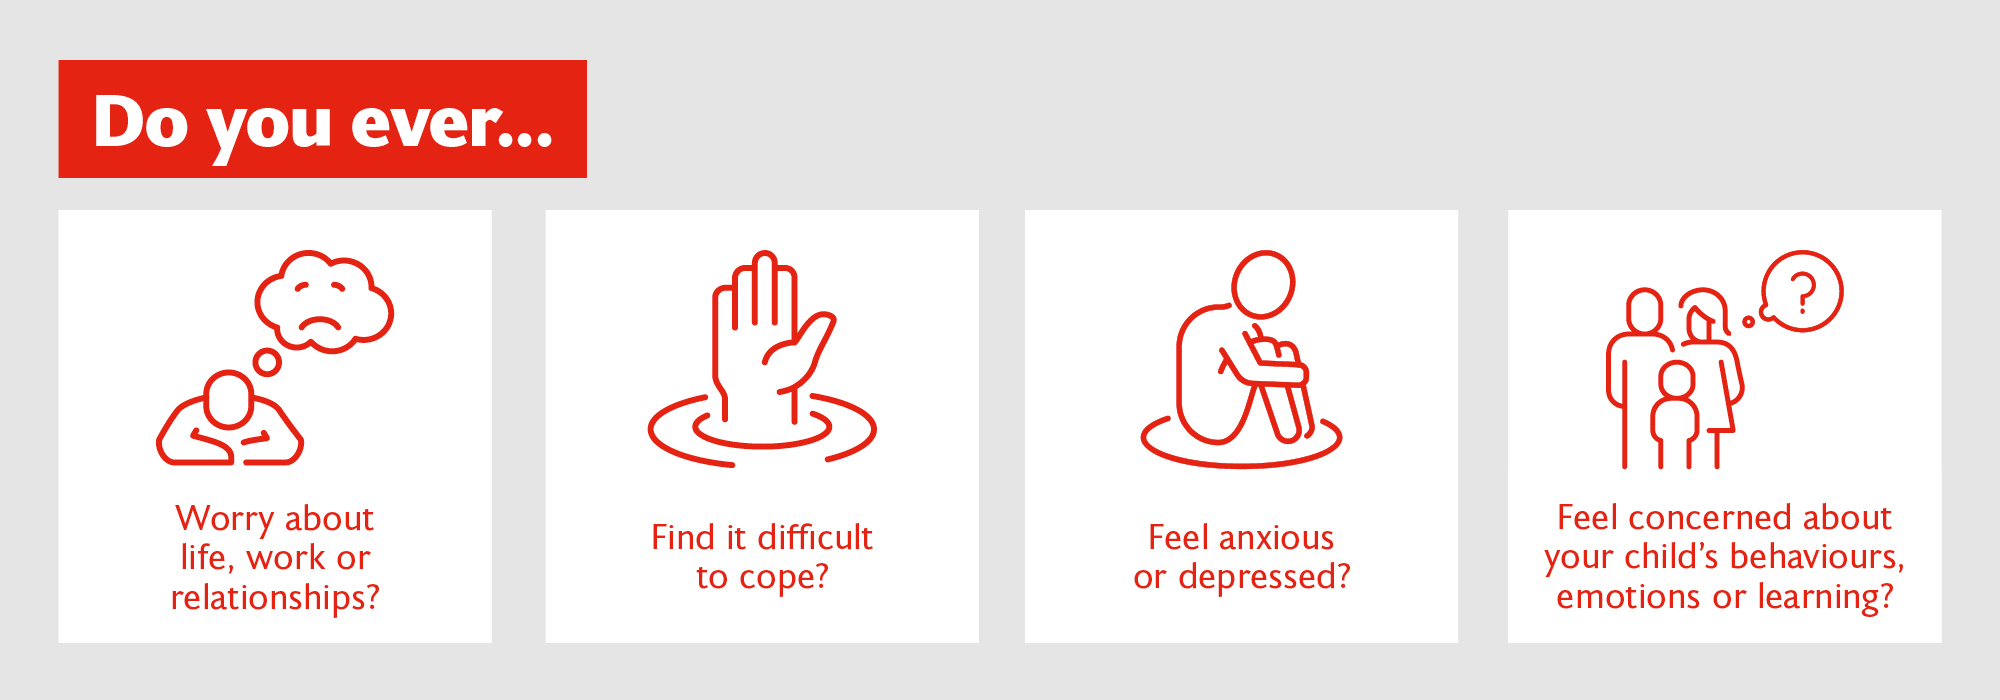 Do you ever... worry about life, work or relationships? find it difficult to cope? feel anxious or depressed? feel concerned about your child's behaviour, emotions or learning?